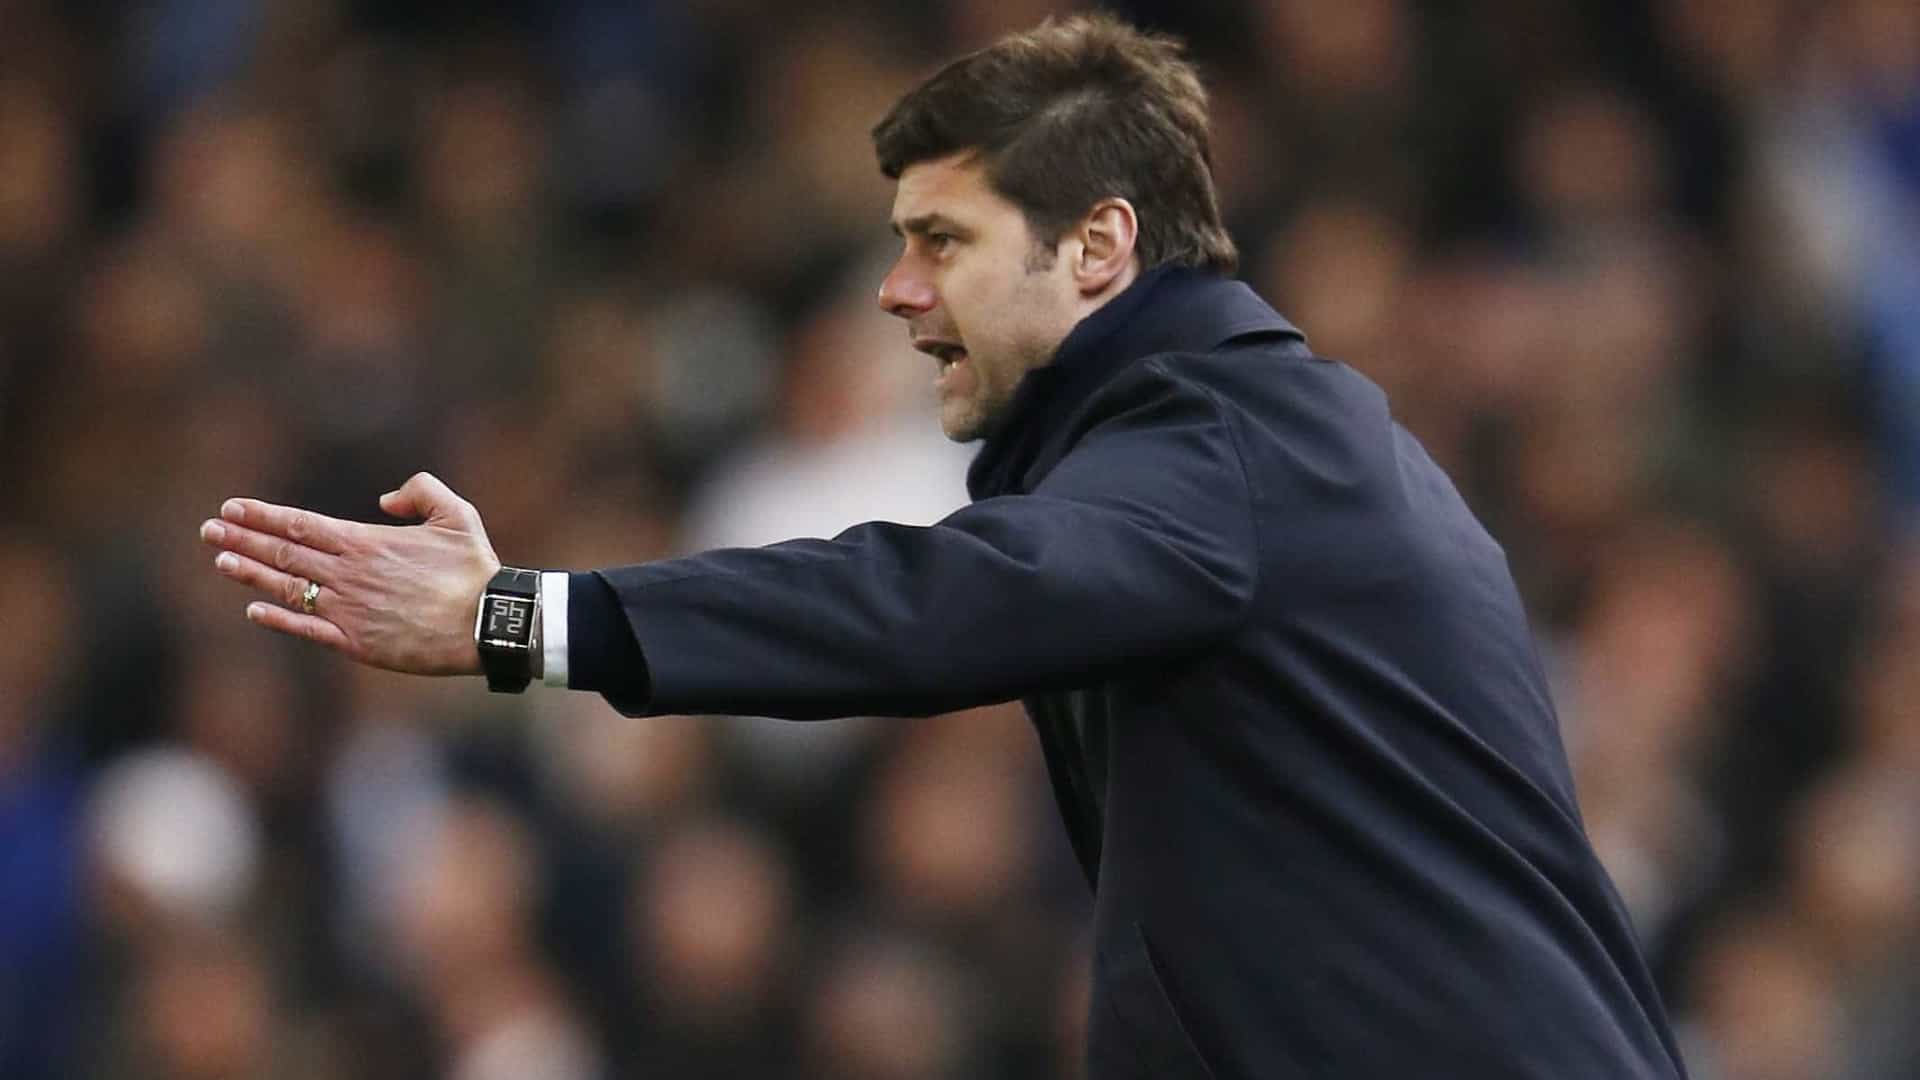 Pochettino abre as portas do Tottenham ao retirado Ryan Mason